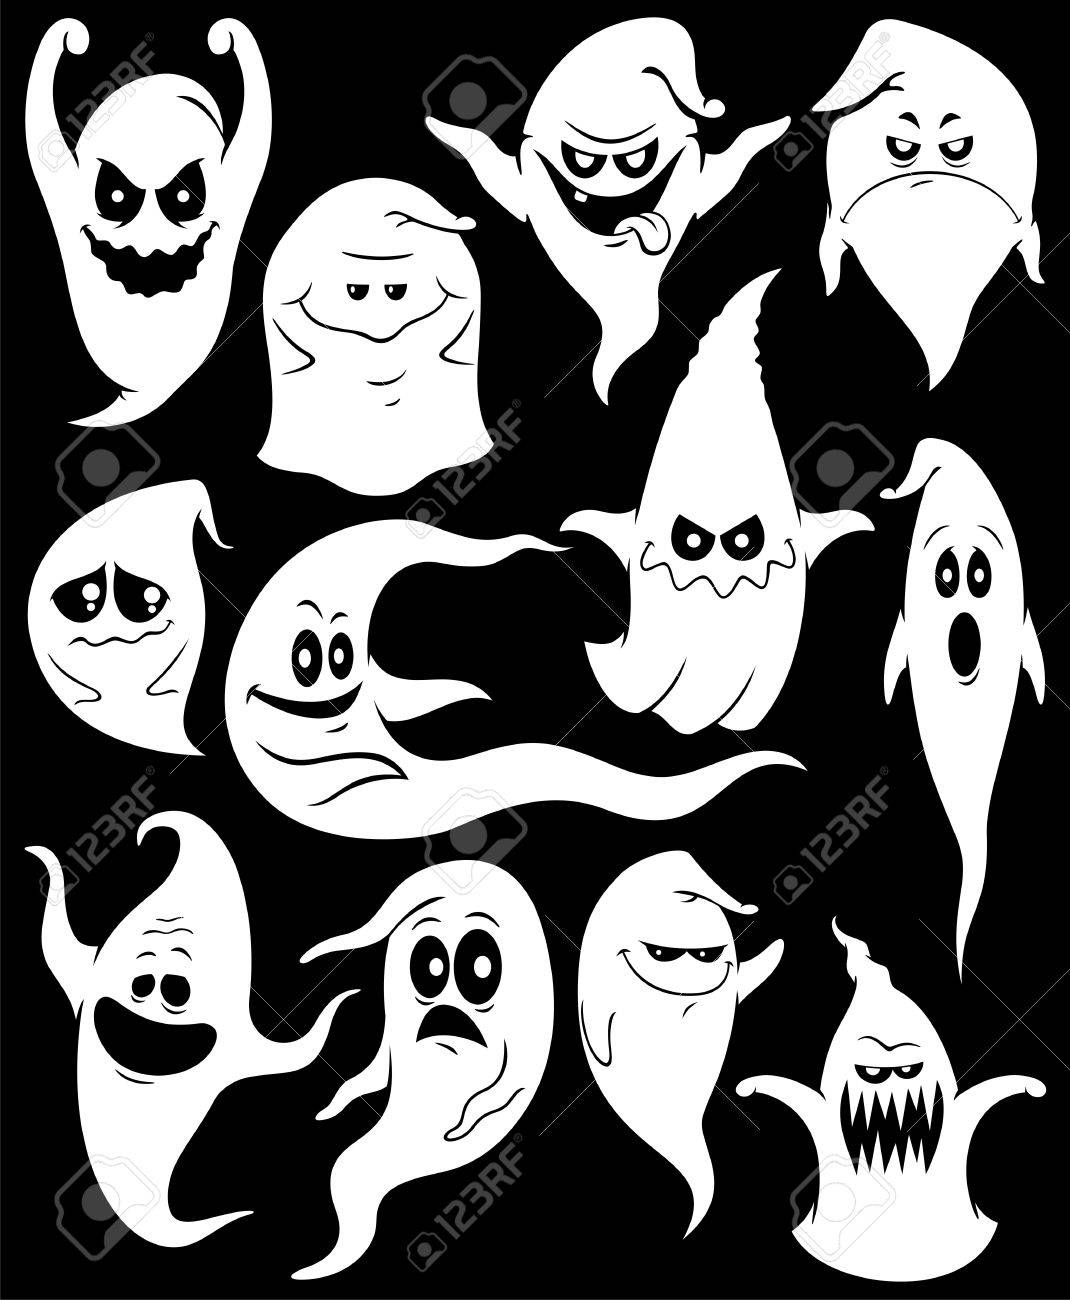 Set of 12 spooky ghosts. Stock Vector - 17792066